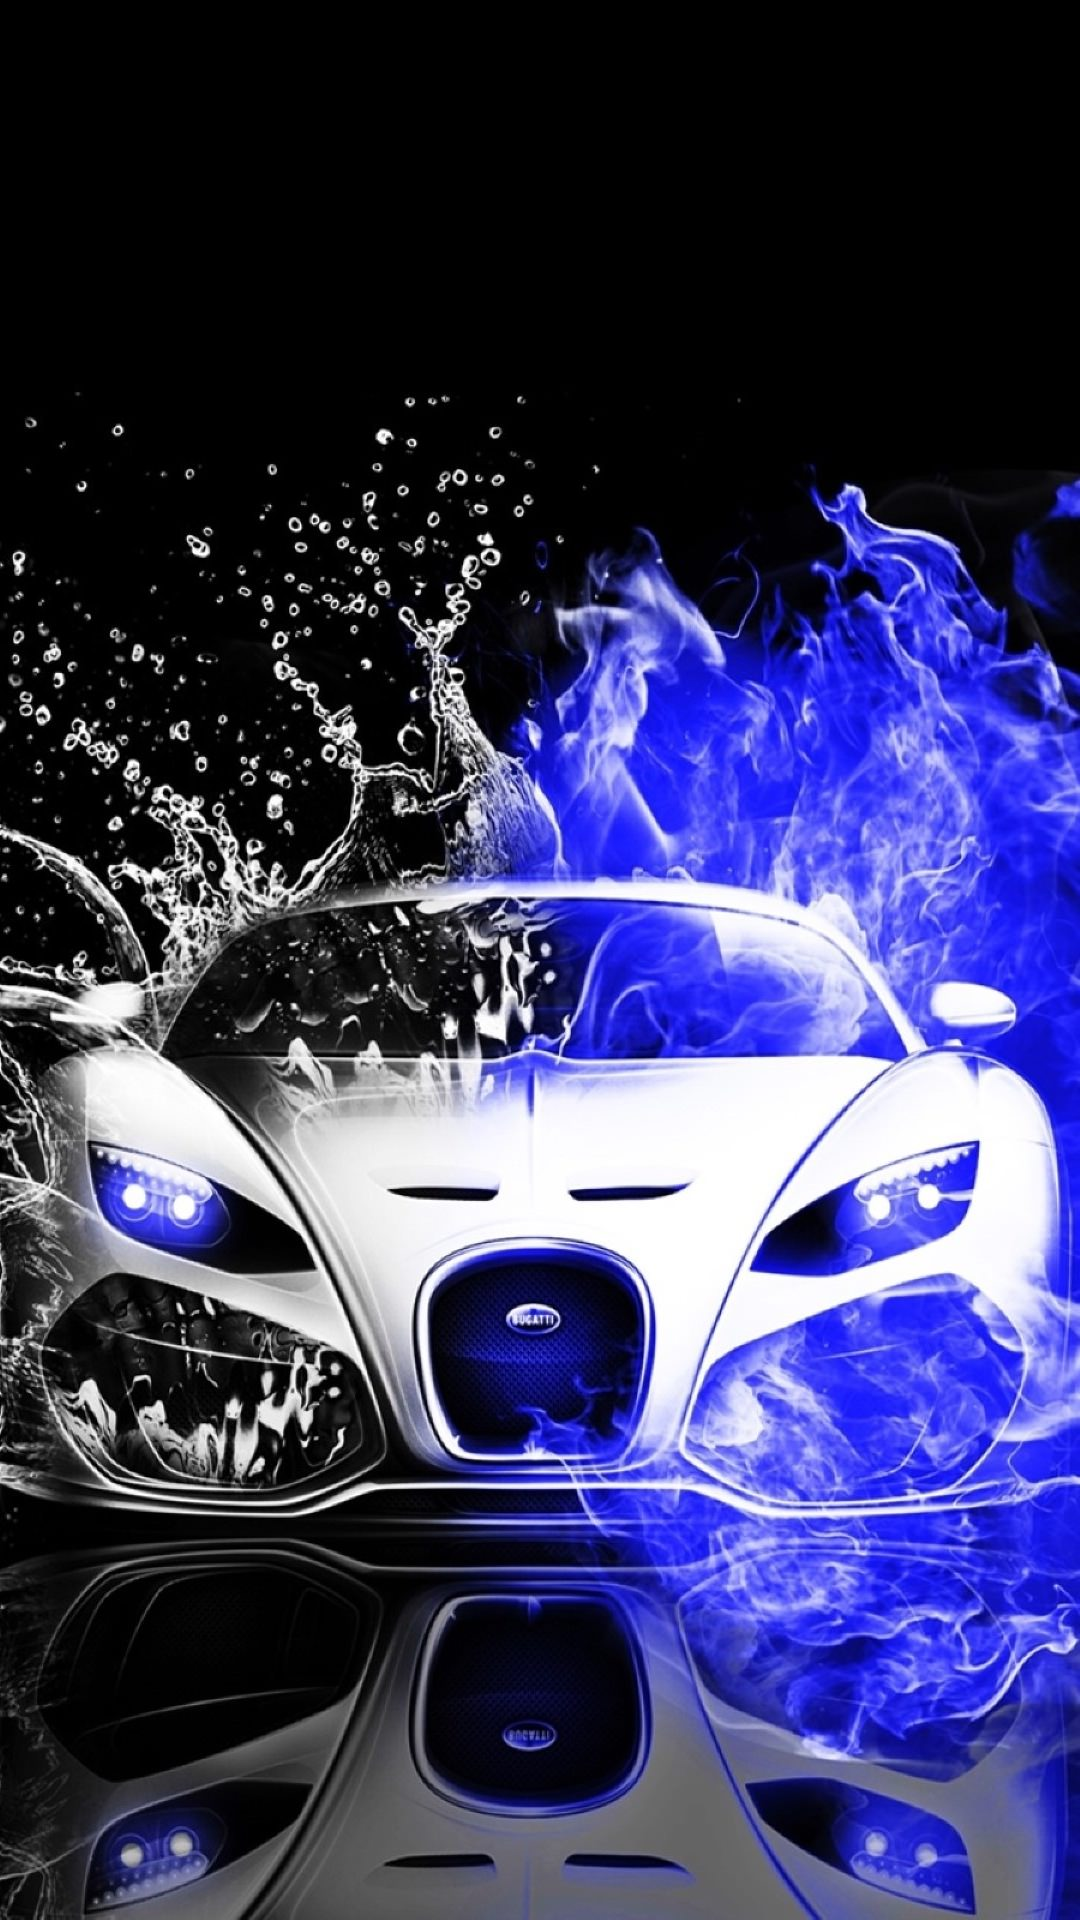 Wallpaper Iphone Black And White Cool Cars Blue Water Black And White Wallpaper Sc Smartphone